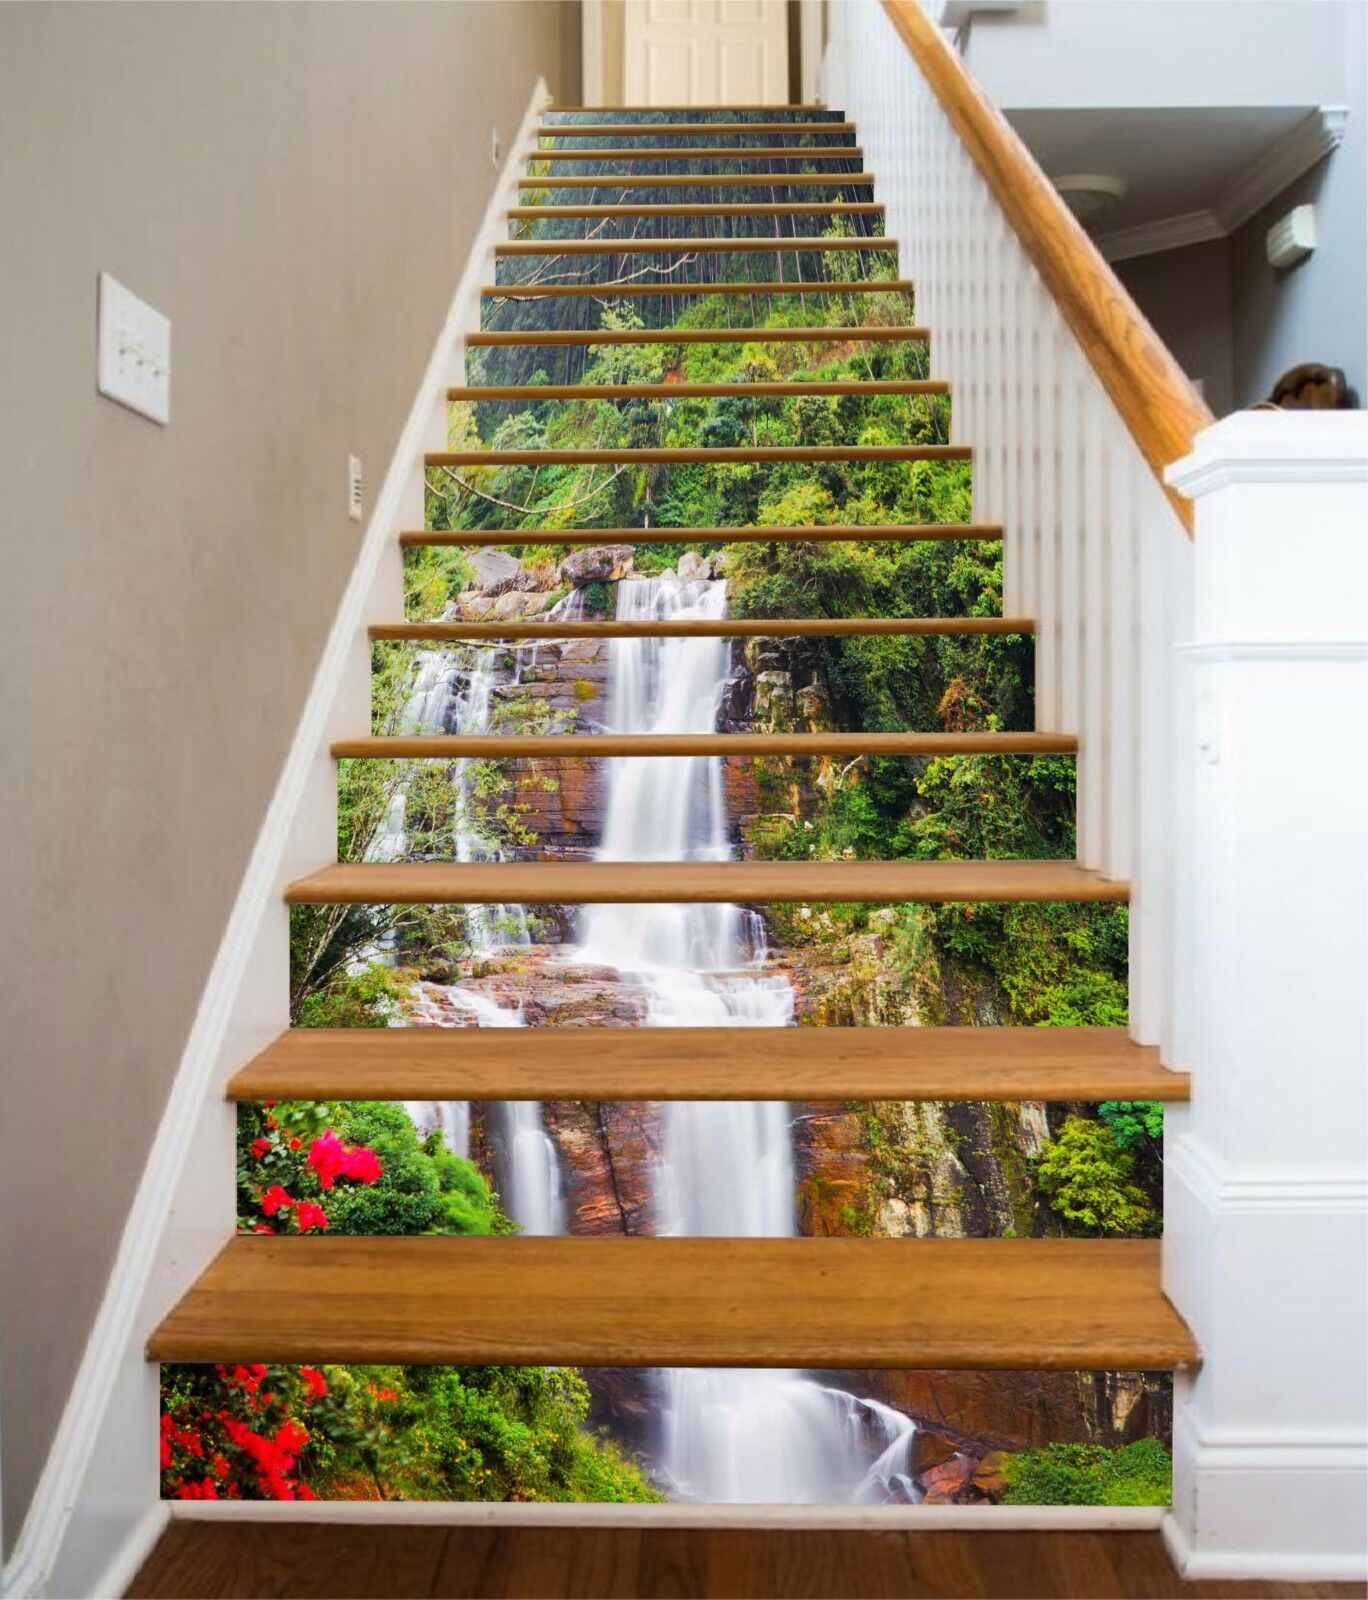 3D Fresh Forest 885 Stair Risers Decoration Photo Mural Vinyl Decal Wallpaper AU